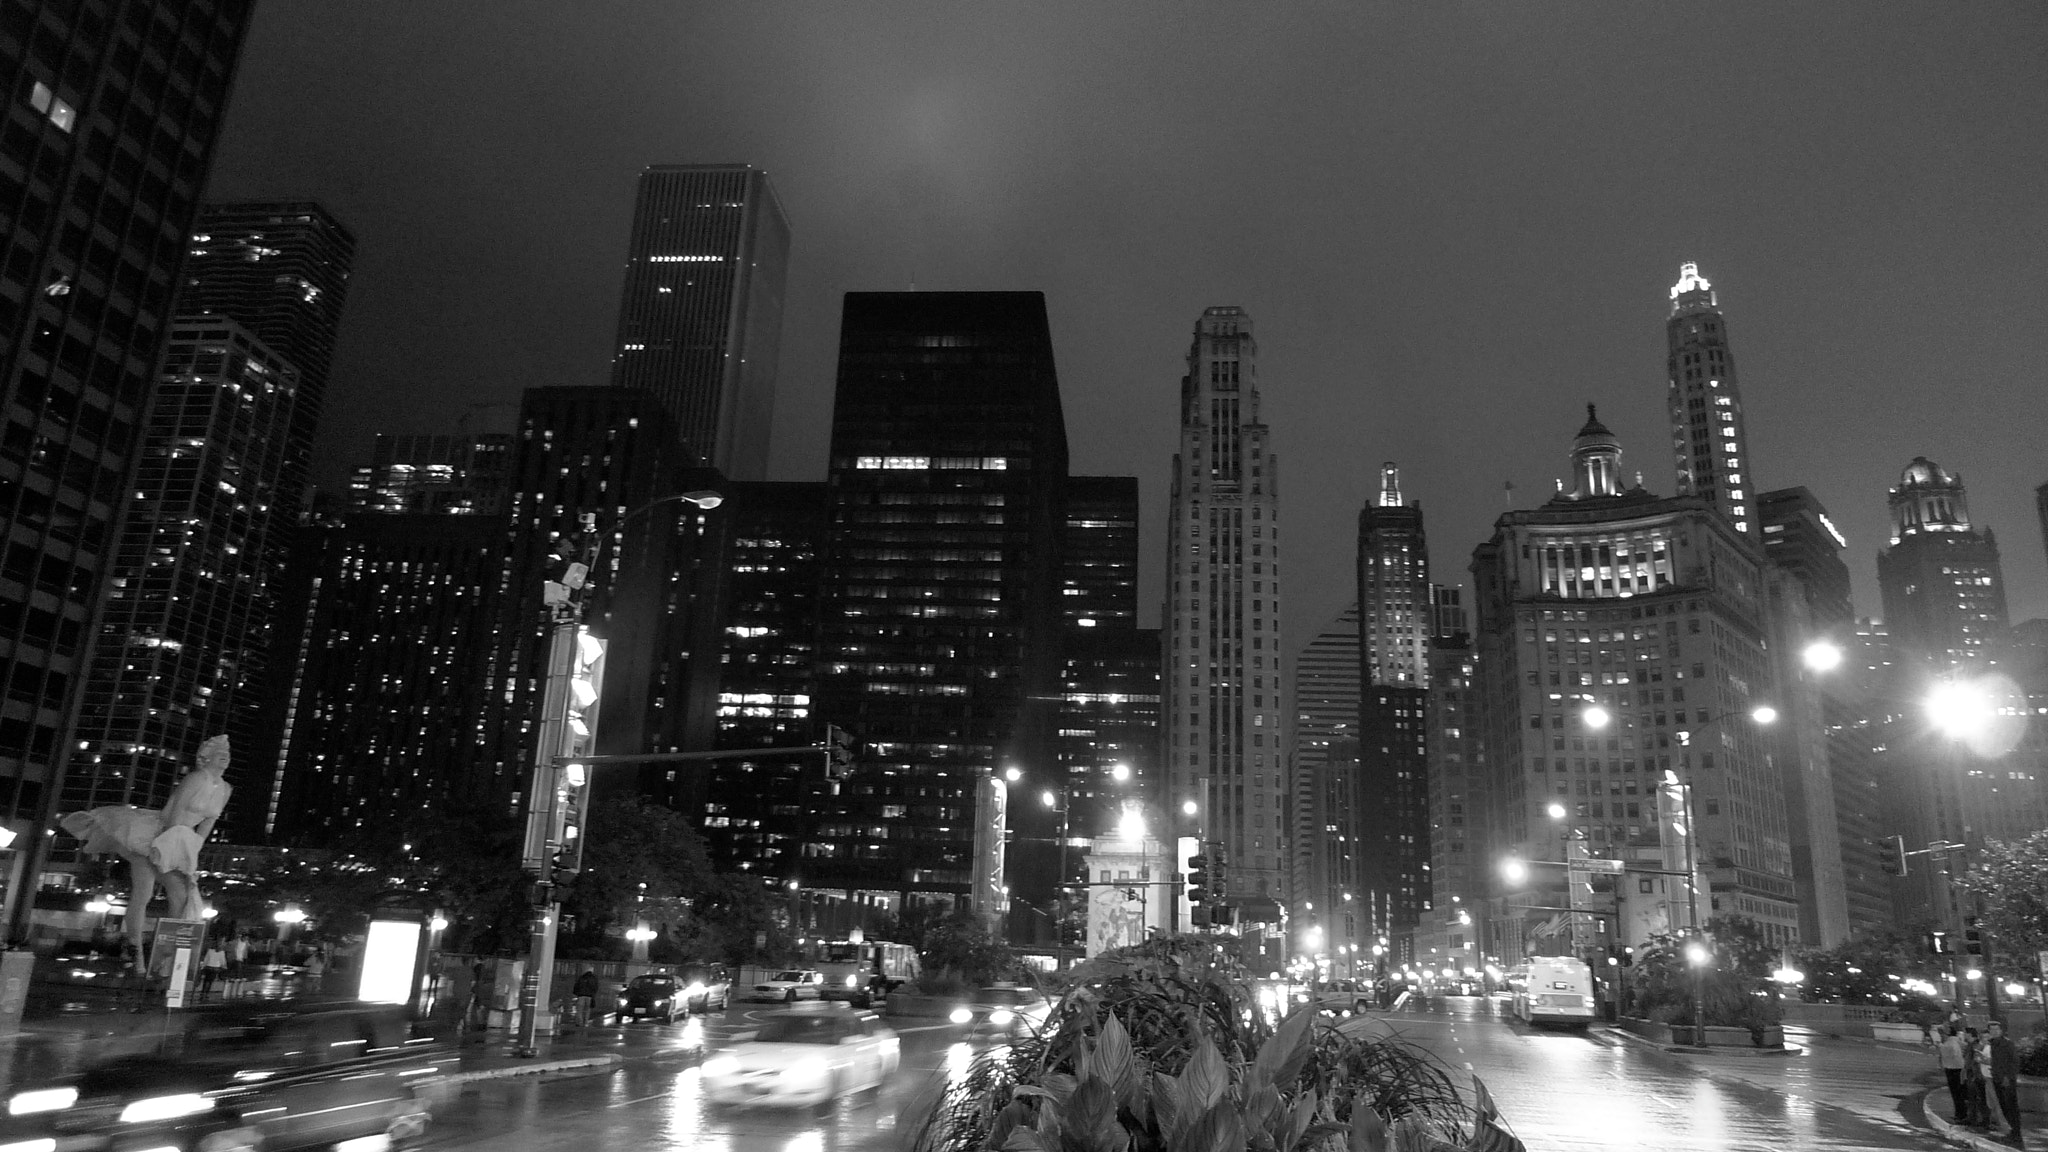 Photograph N Michigan Avenue Bridge, looking south, Chicago by Francisco Marty on 500px